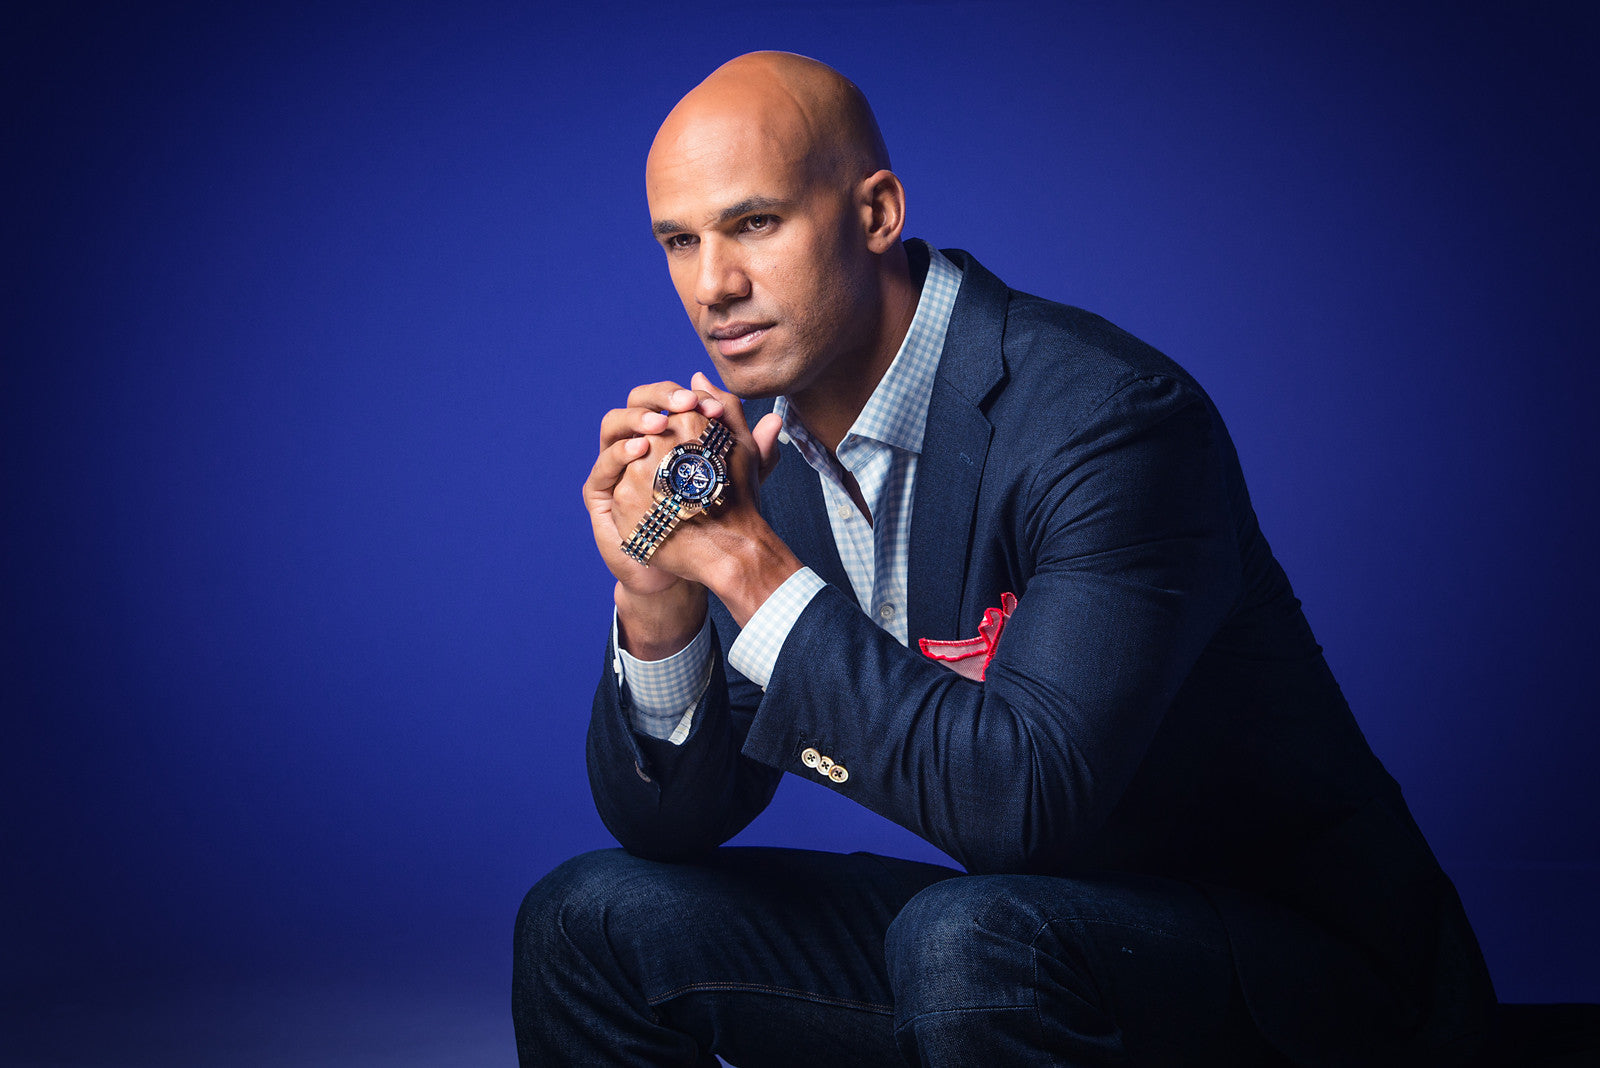 Invicta Watches: Jason Taylor Collection, In A League Of Their Own